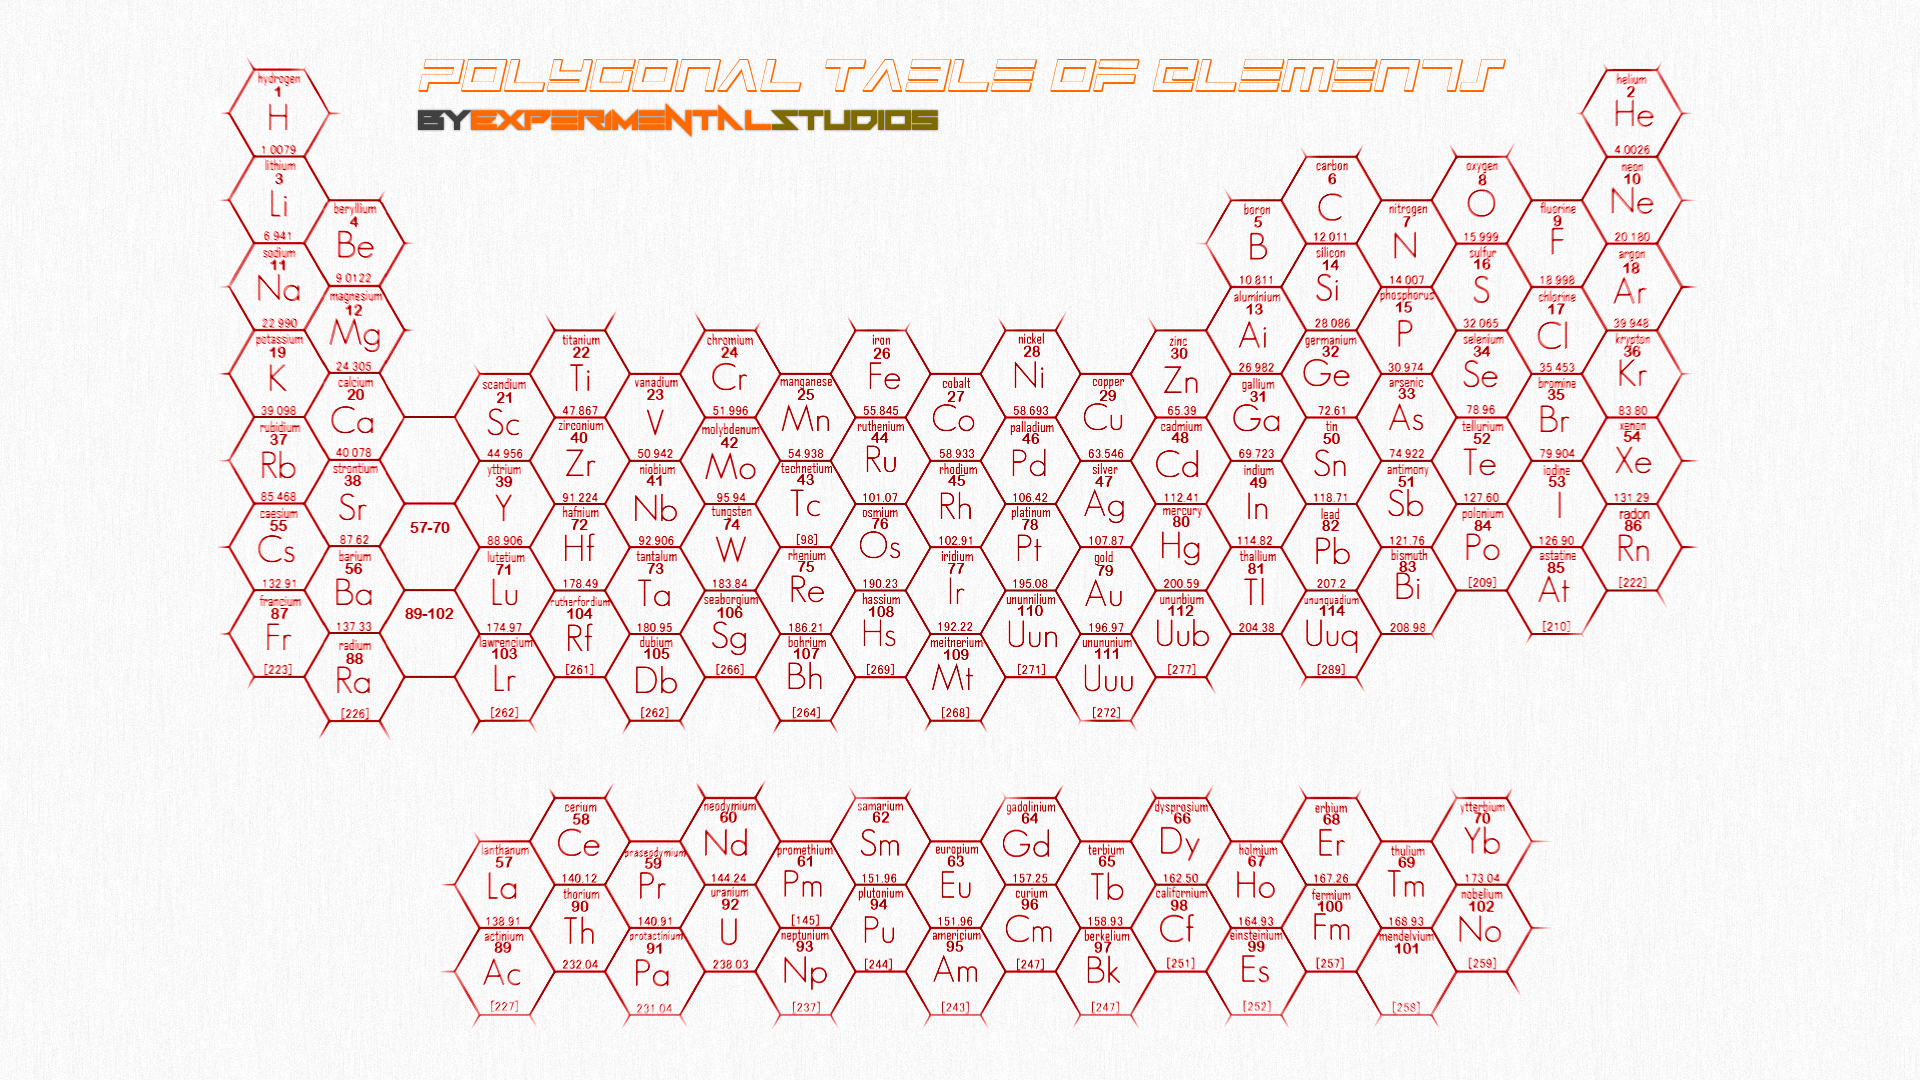 Polygonal Peroidic Table of Elements by Exper1mental